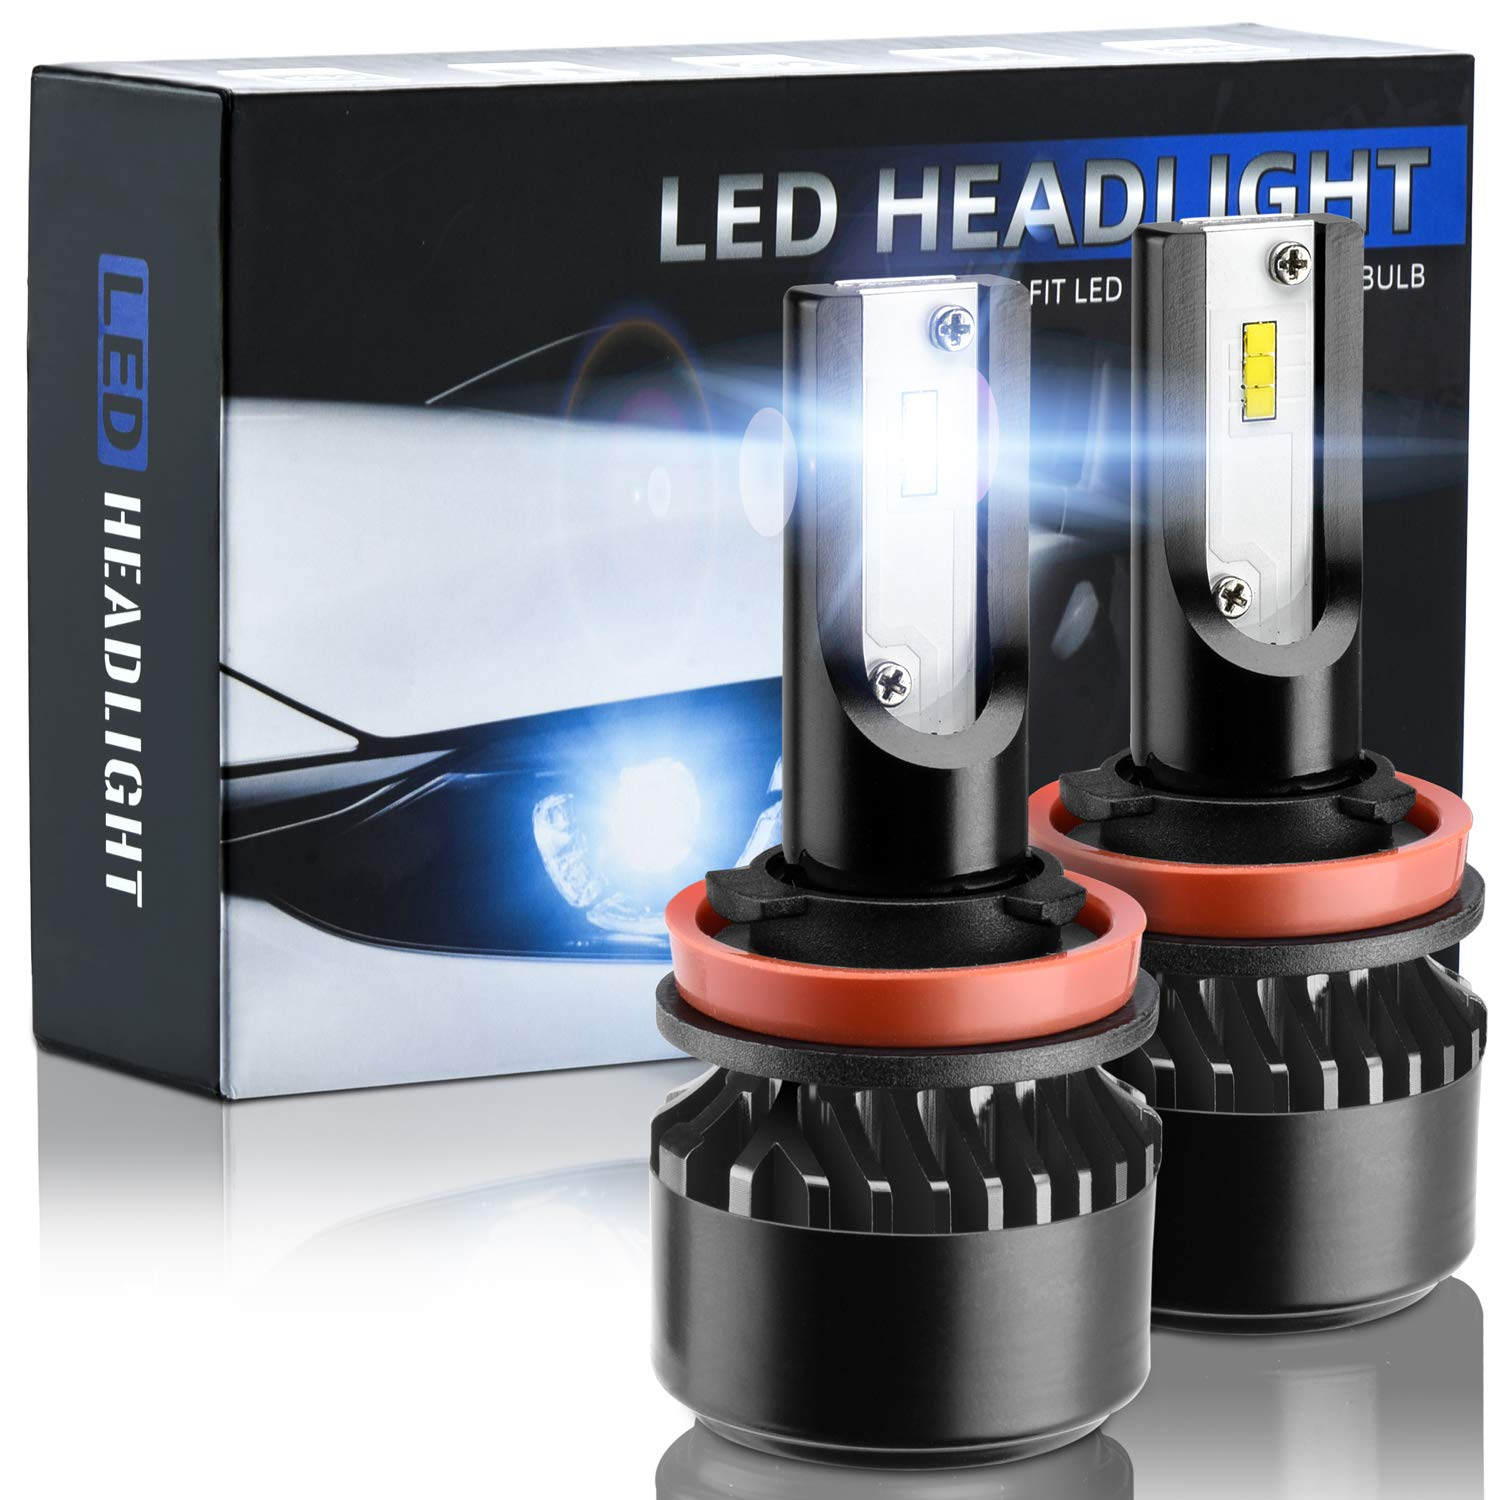 GSSUSA H11 LED HEADLIGHT BULB